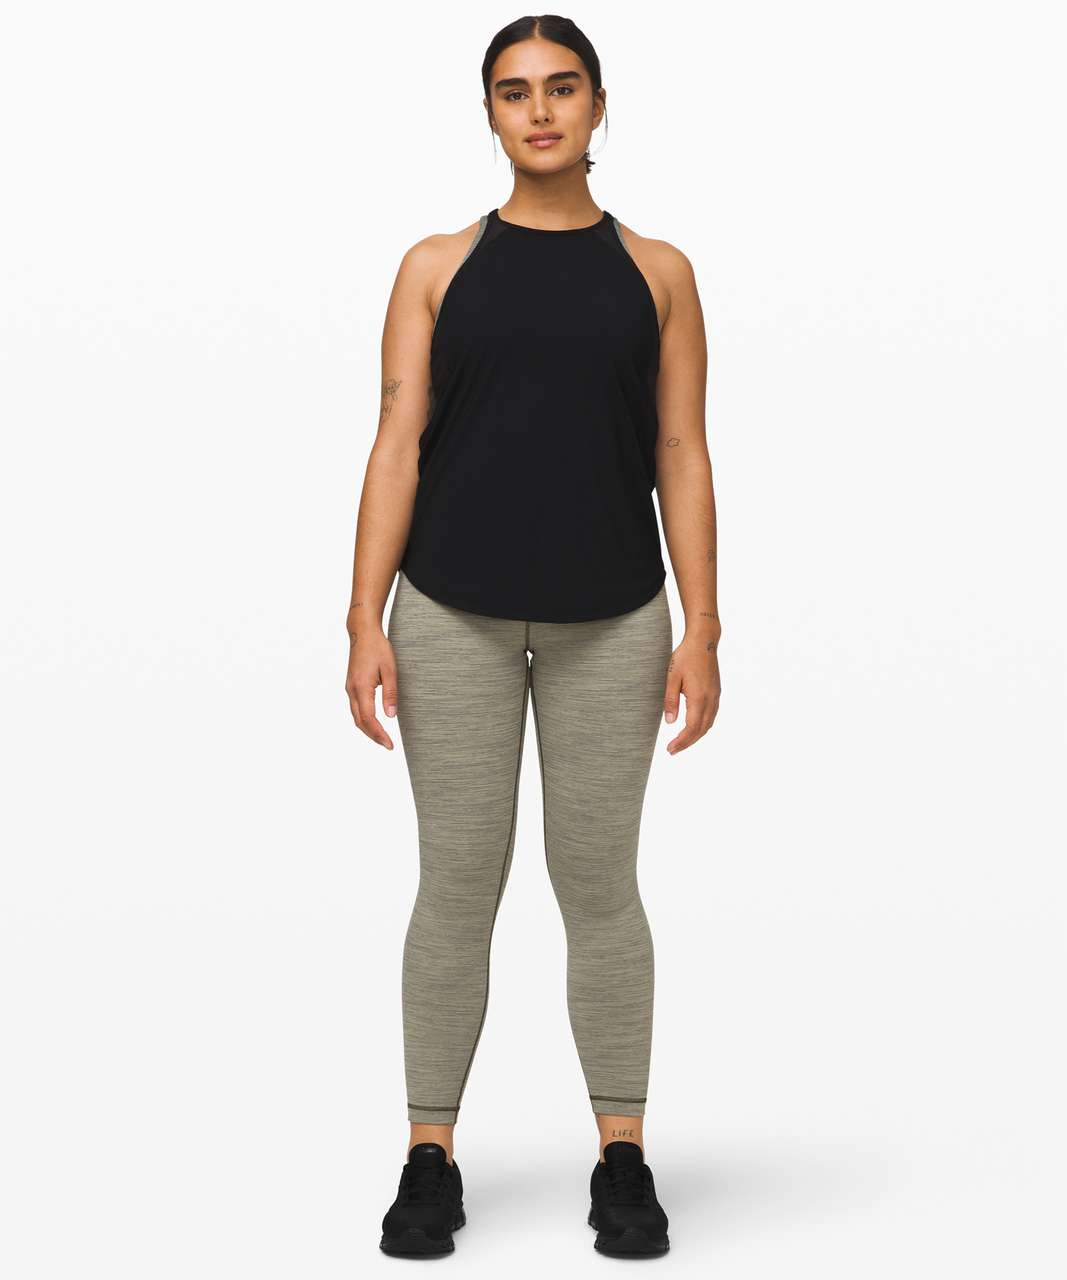 """Lululemon Wunder Under High-Rise Tight 25"""" *Full-On Luon - Wee Are From Space Sage Dark Olive"""